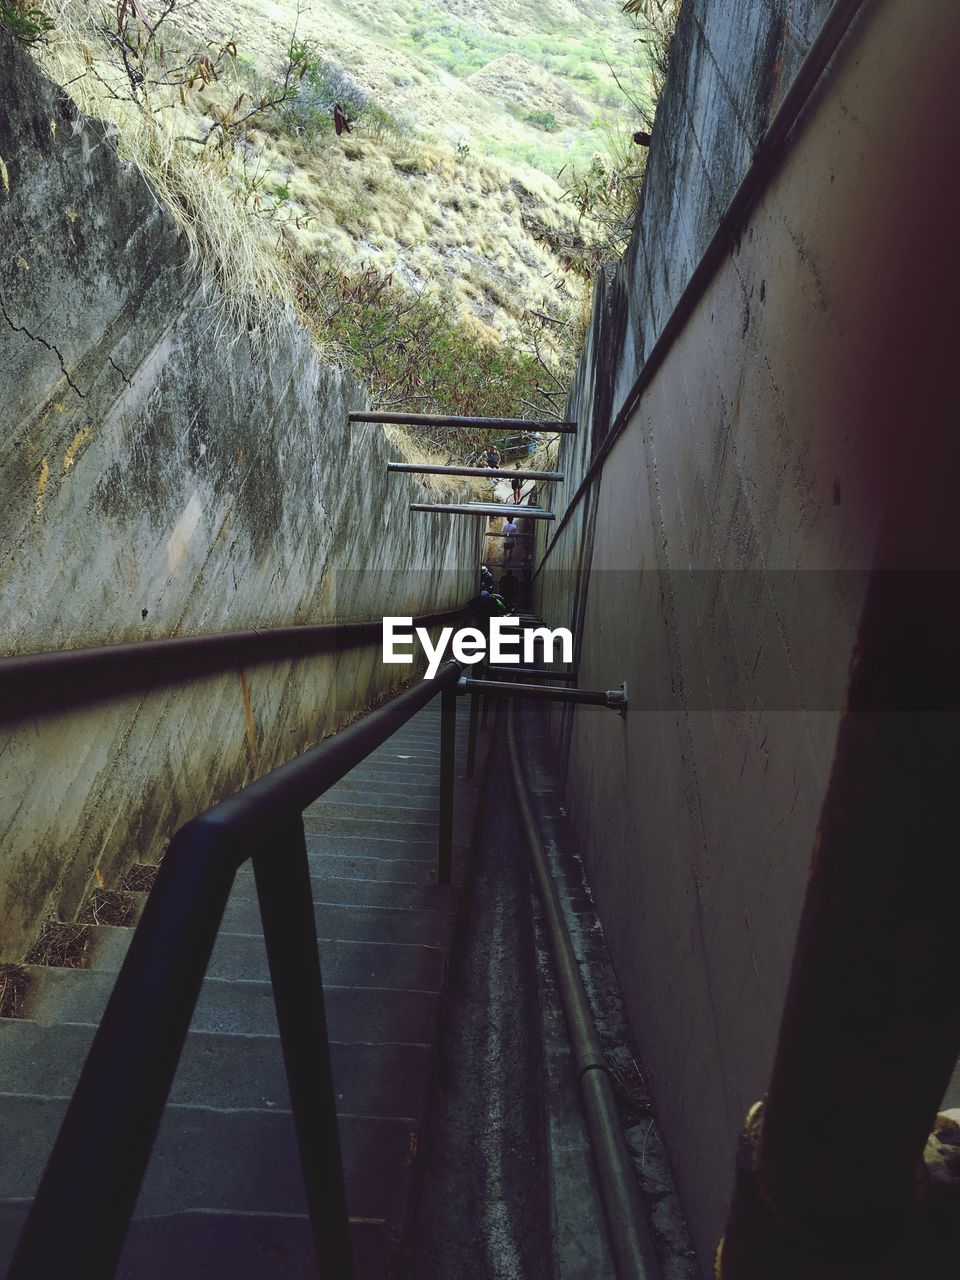 railing, built structure, the way forward, steps and staircases, day, architecture, technology, outdoors, one person, nature, water, hand rail, people